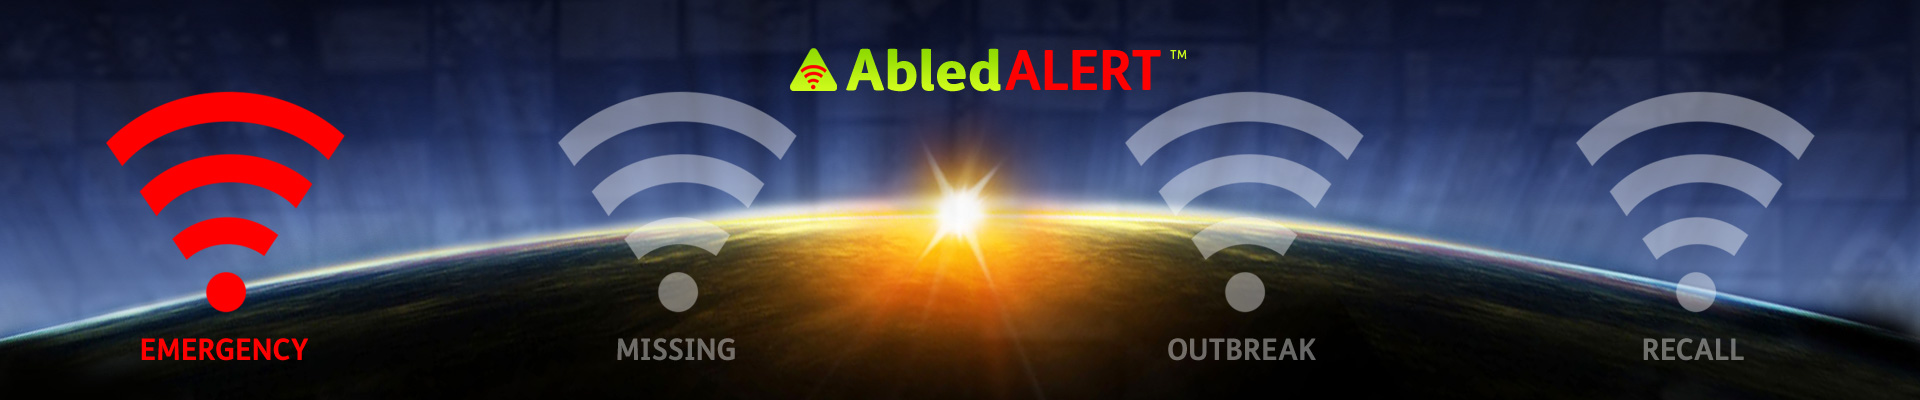 AbledALert Banner with the alert signal for EMERGENCY highlighted.